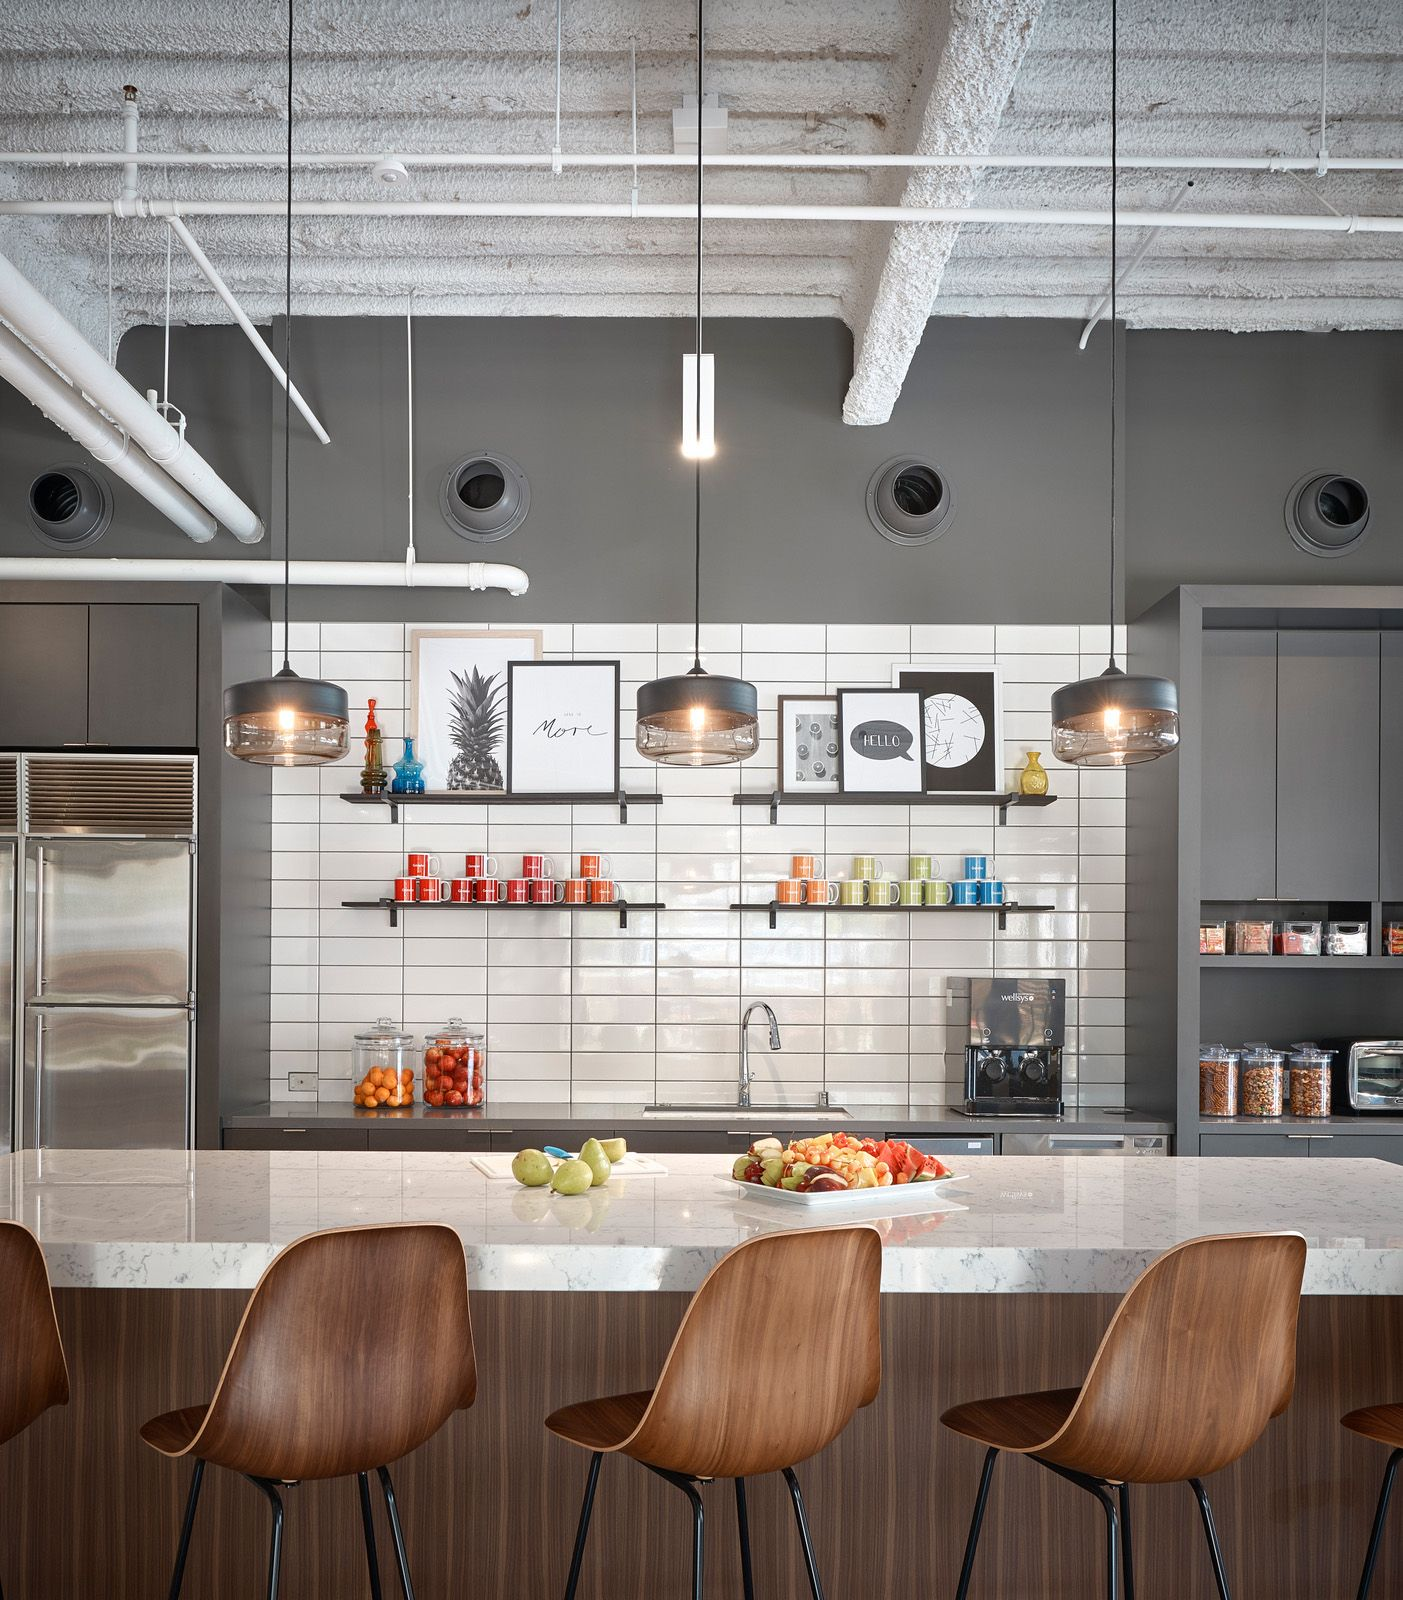 Gensler offices san diego colorful decorative modern office kitchen with open shelving